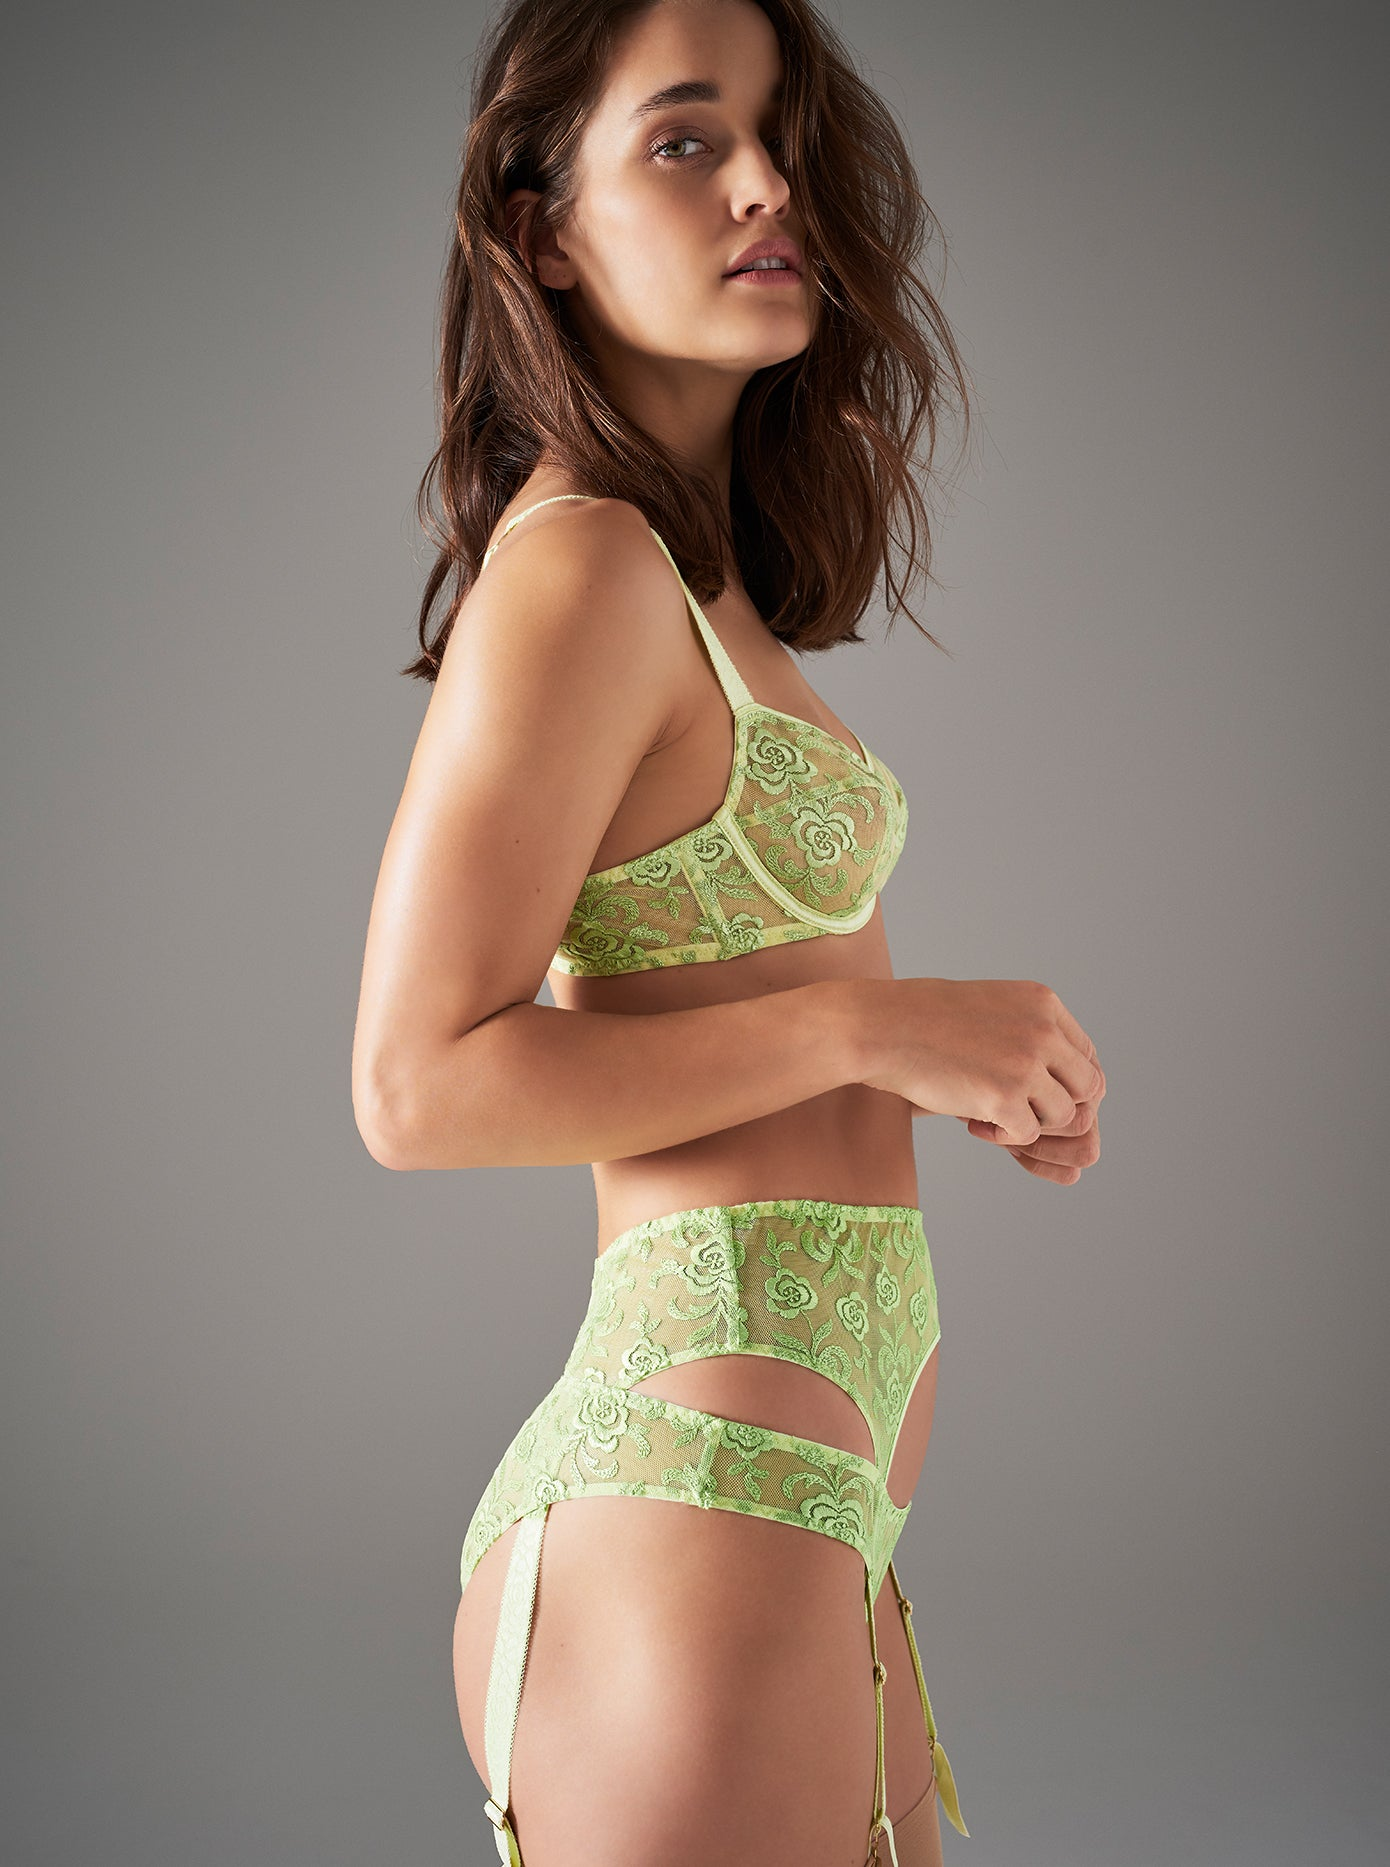 Floral Street | Luxury Green Floral Lace Lingerie Set | Myla